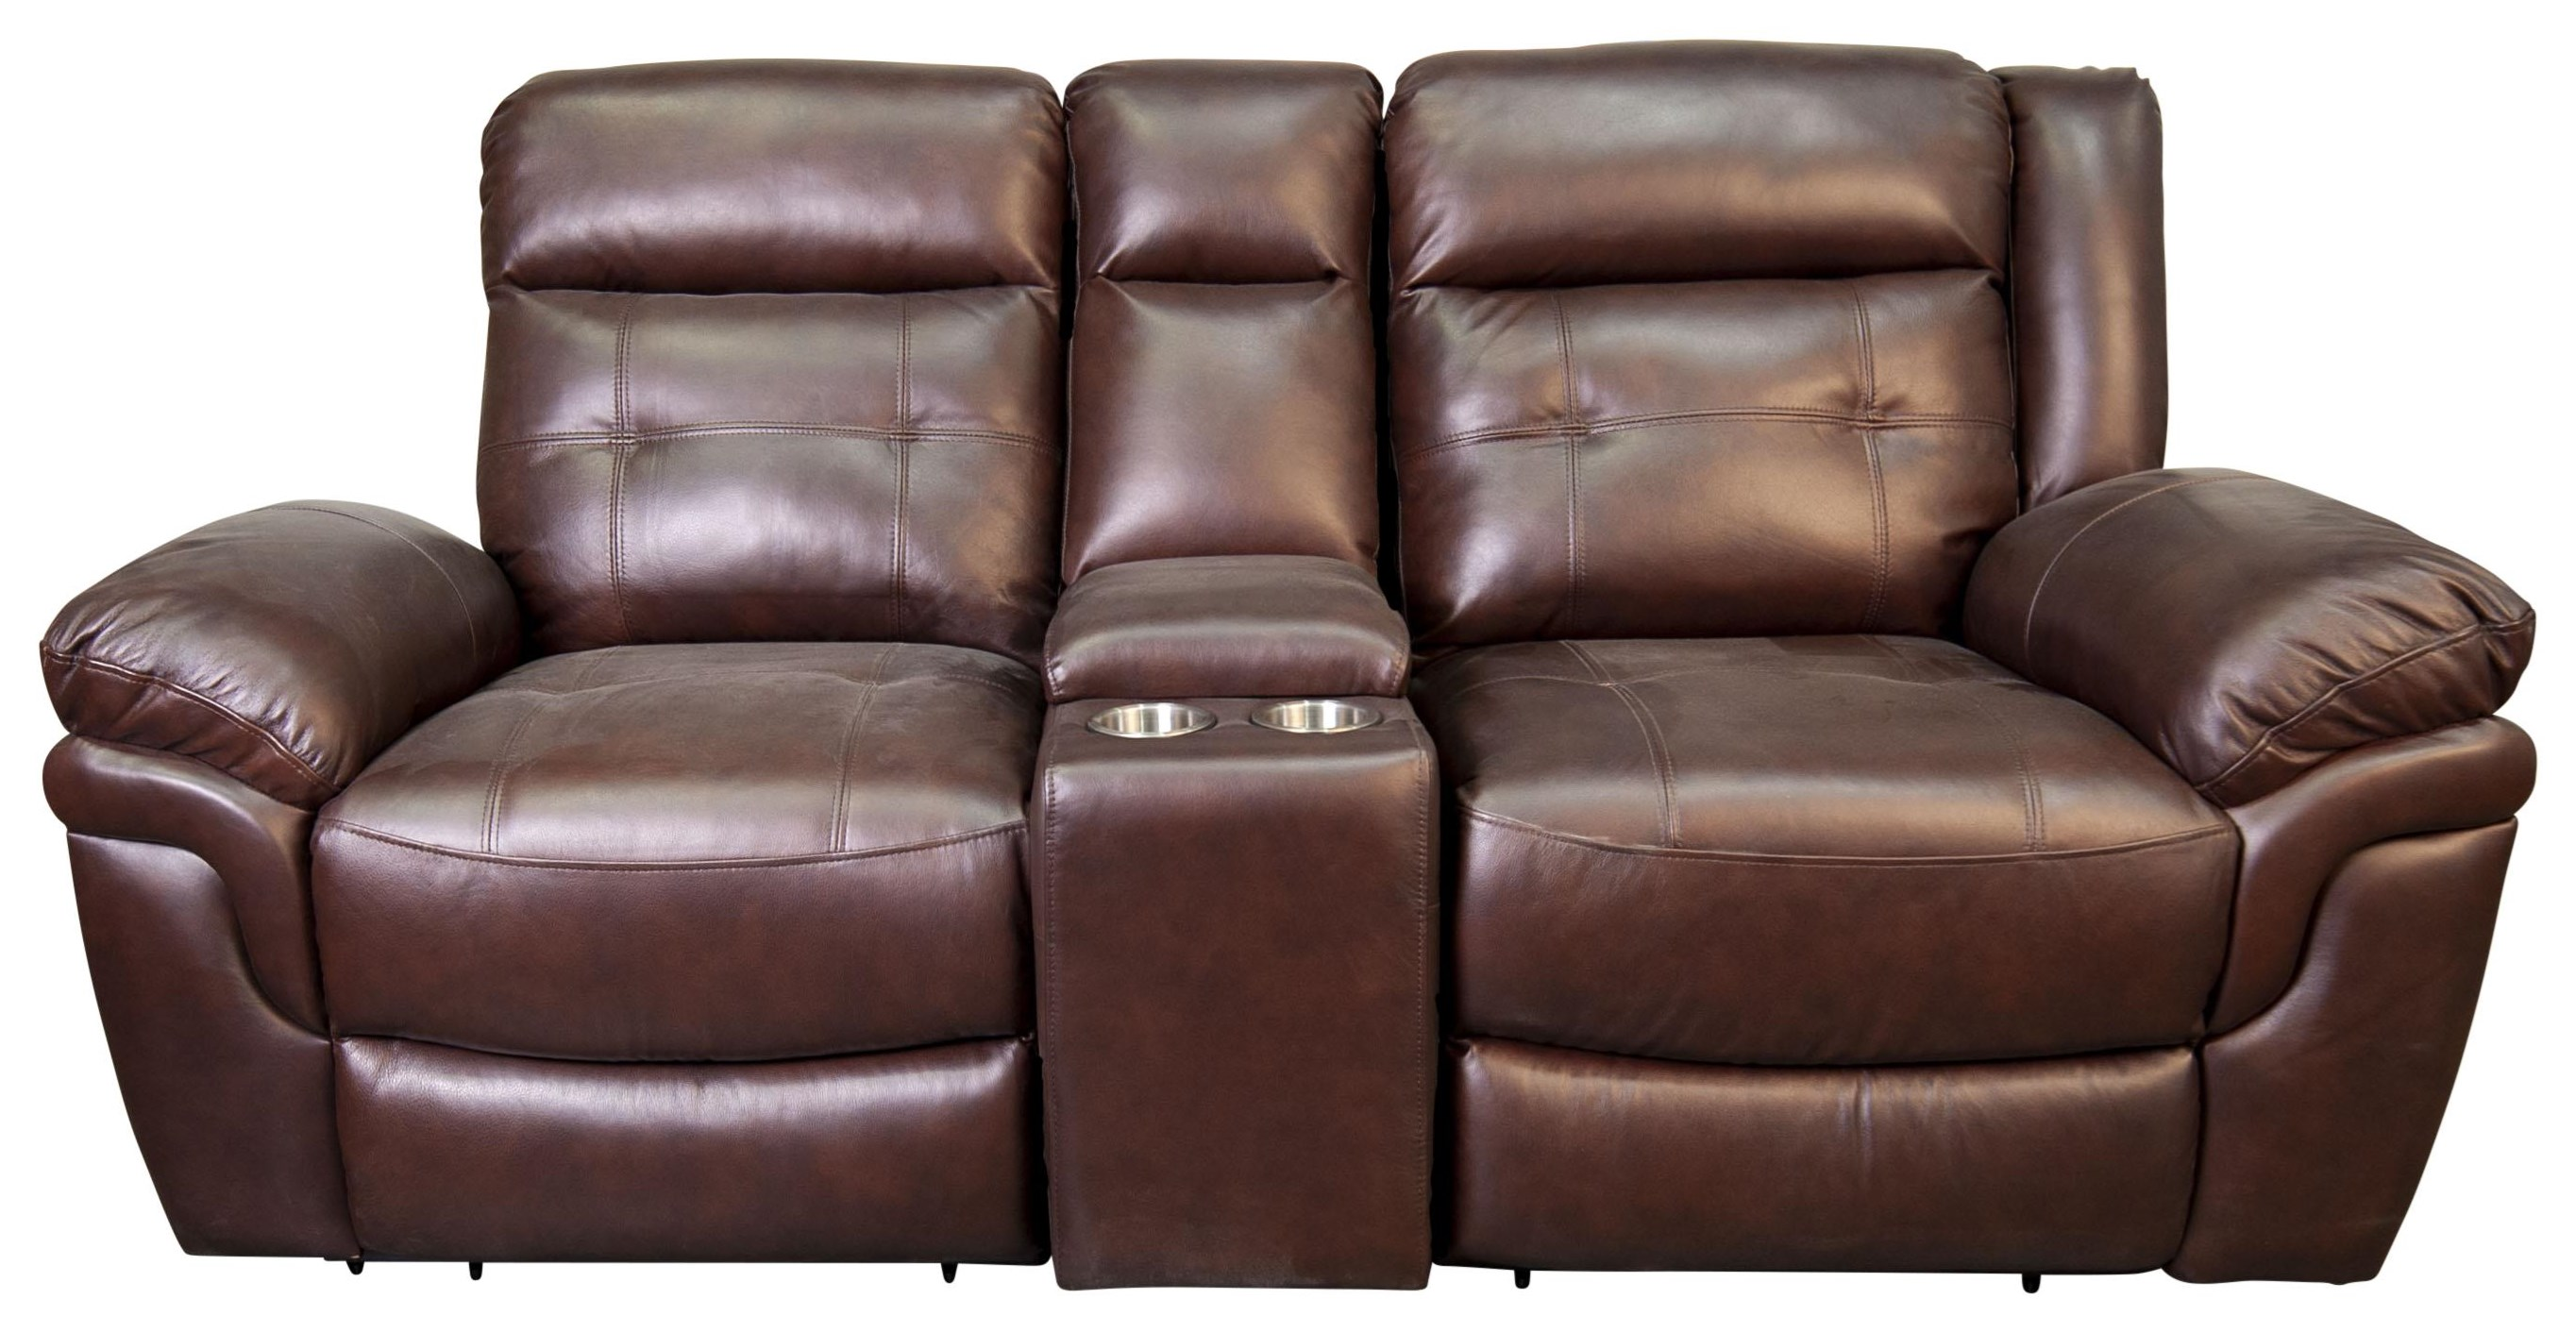 Henson Leather Match Reclining Loveseat